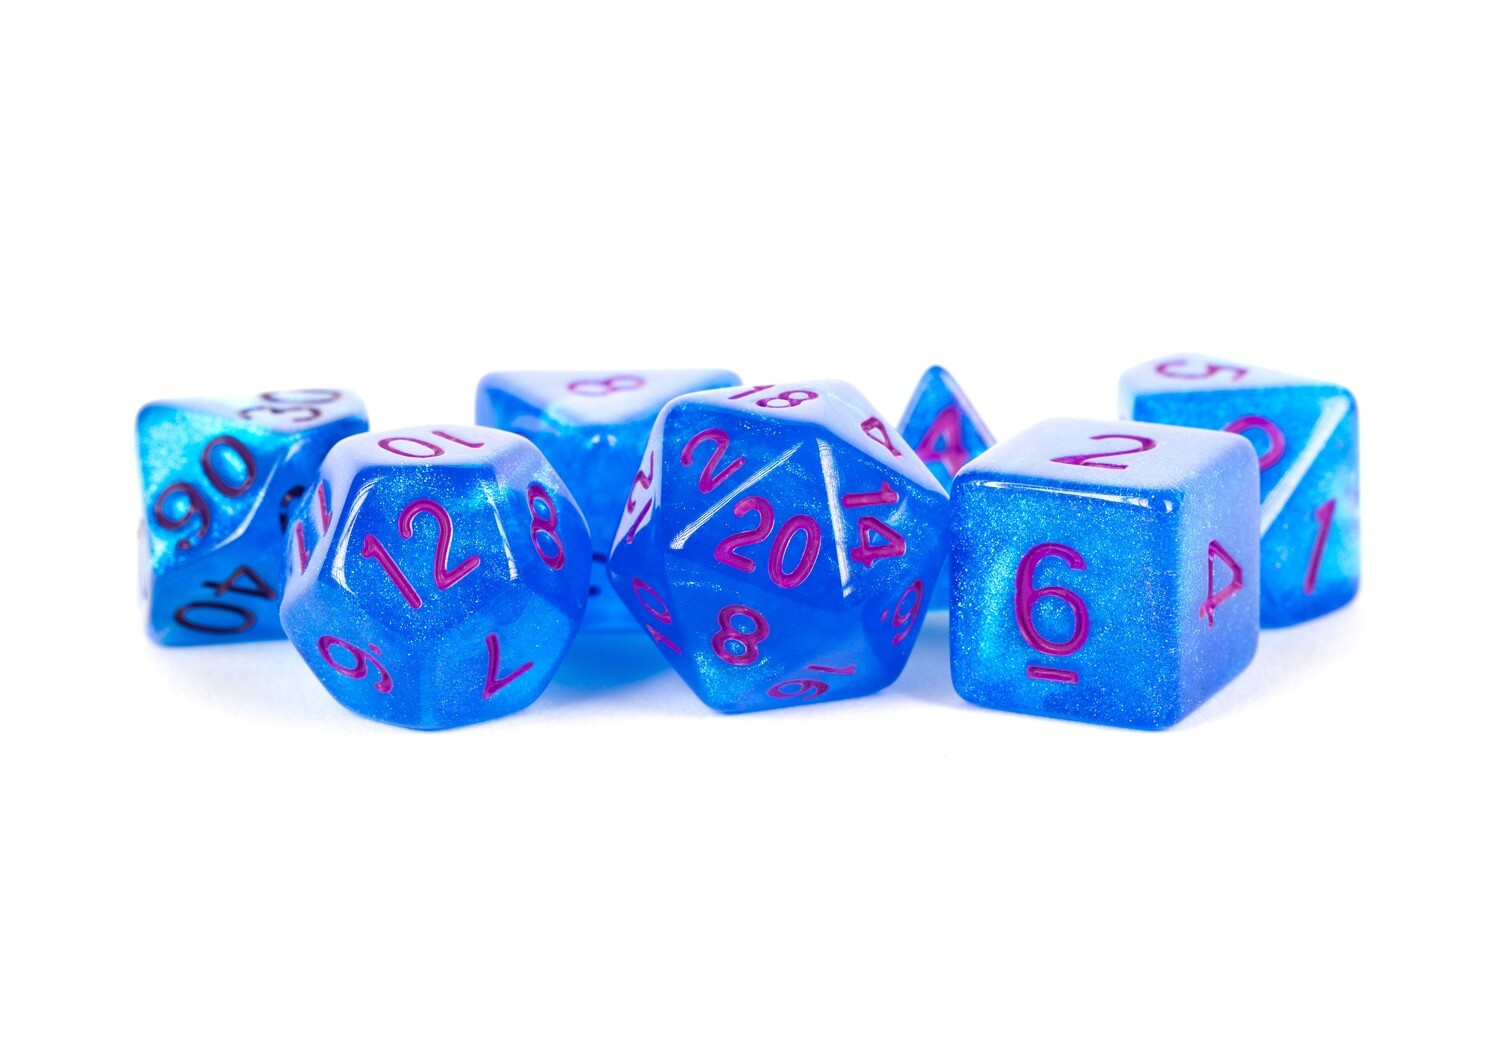 Stardust Blue with Purple 16mm Poly Dice Set Tabletop RPG Gaming Roleplay Games